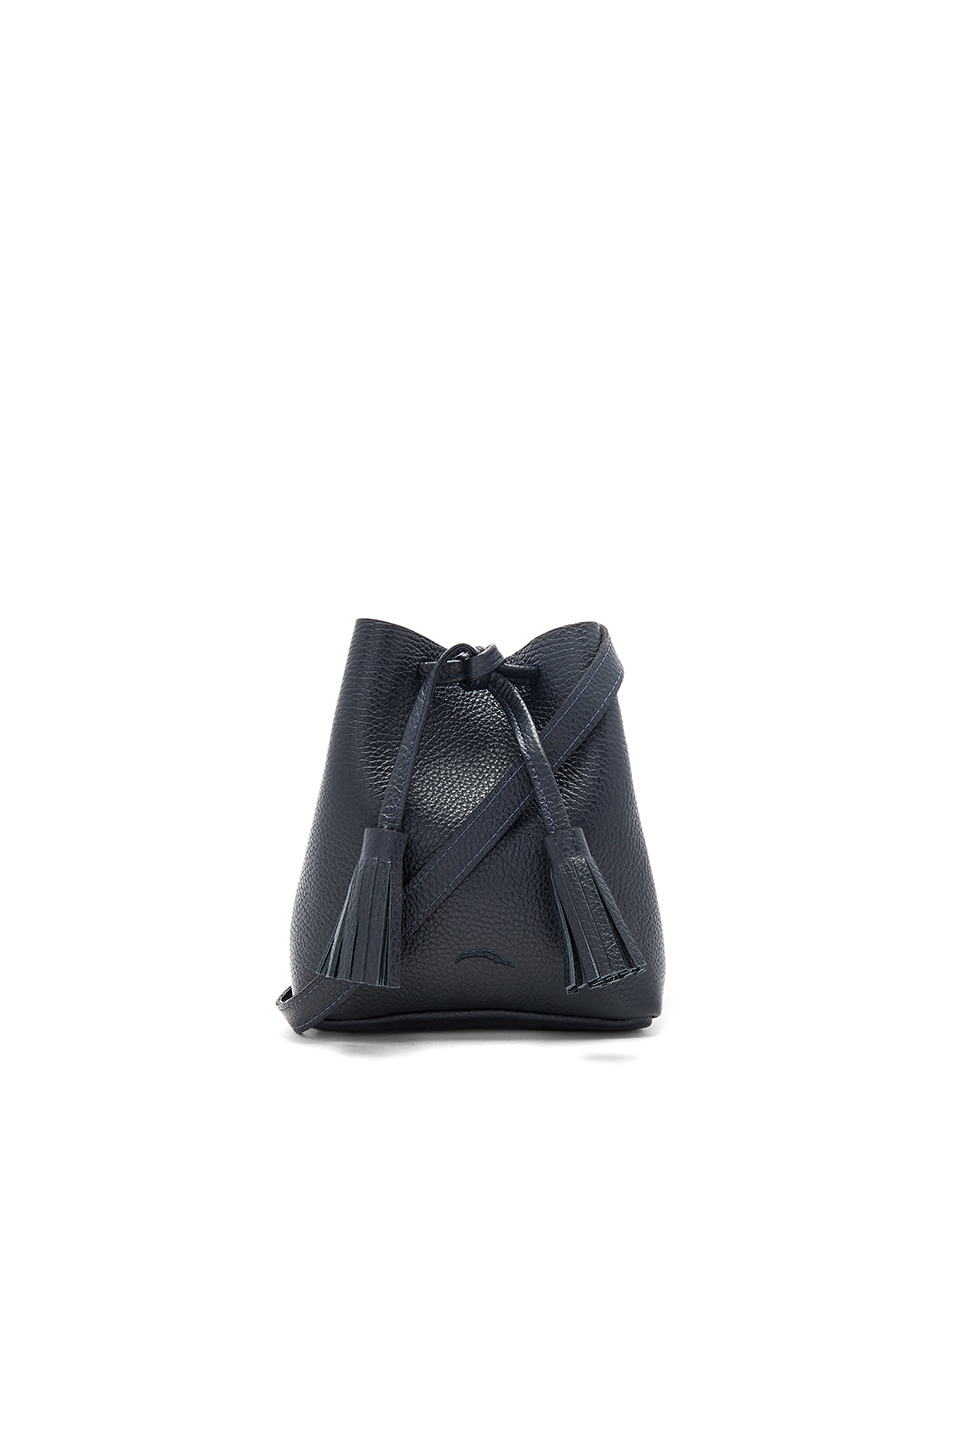 Shaffer Greta Bucket Bag in Pebbled Navy